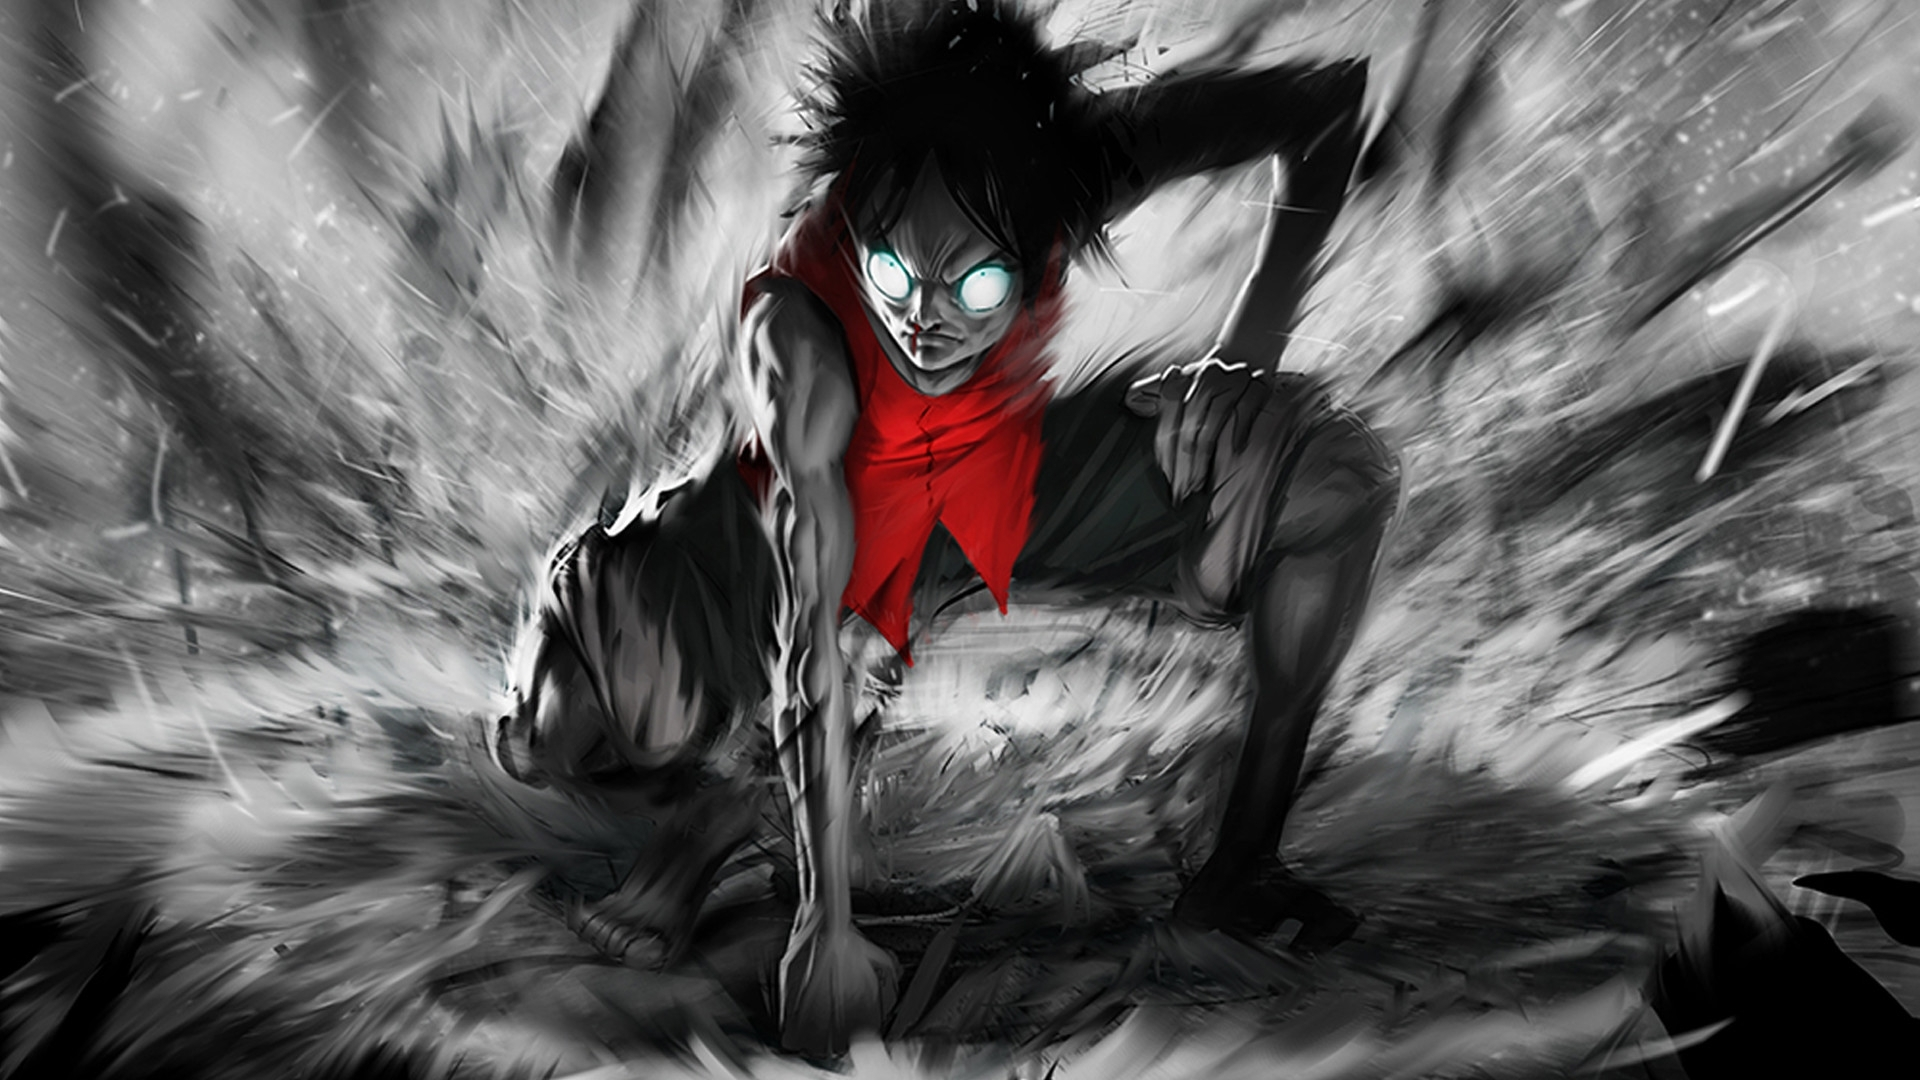 hd anime wallpapers 1080p (72+ images)